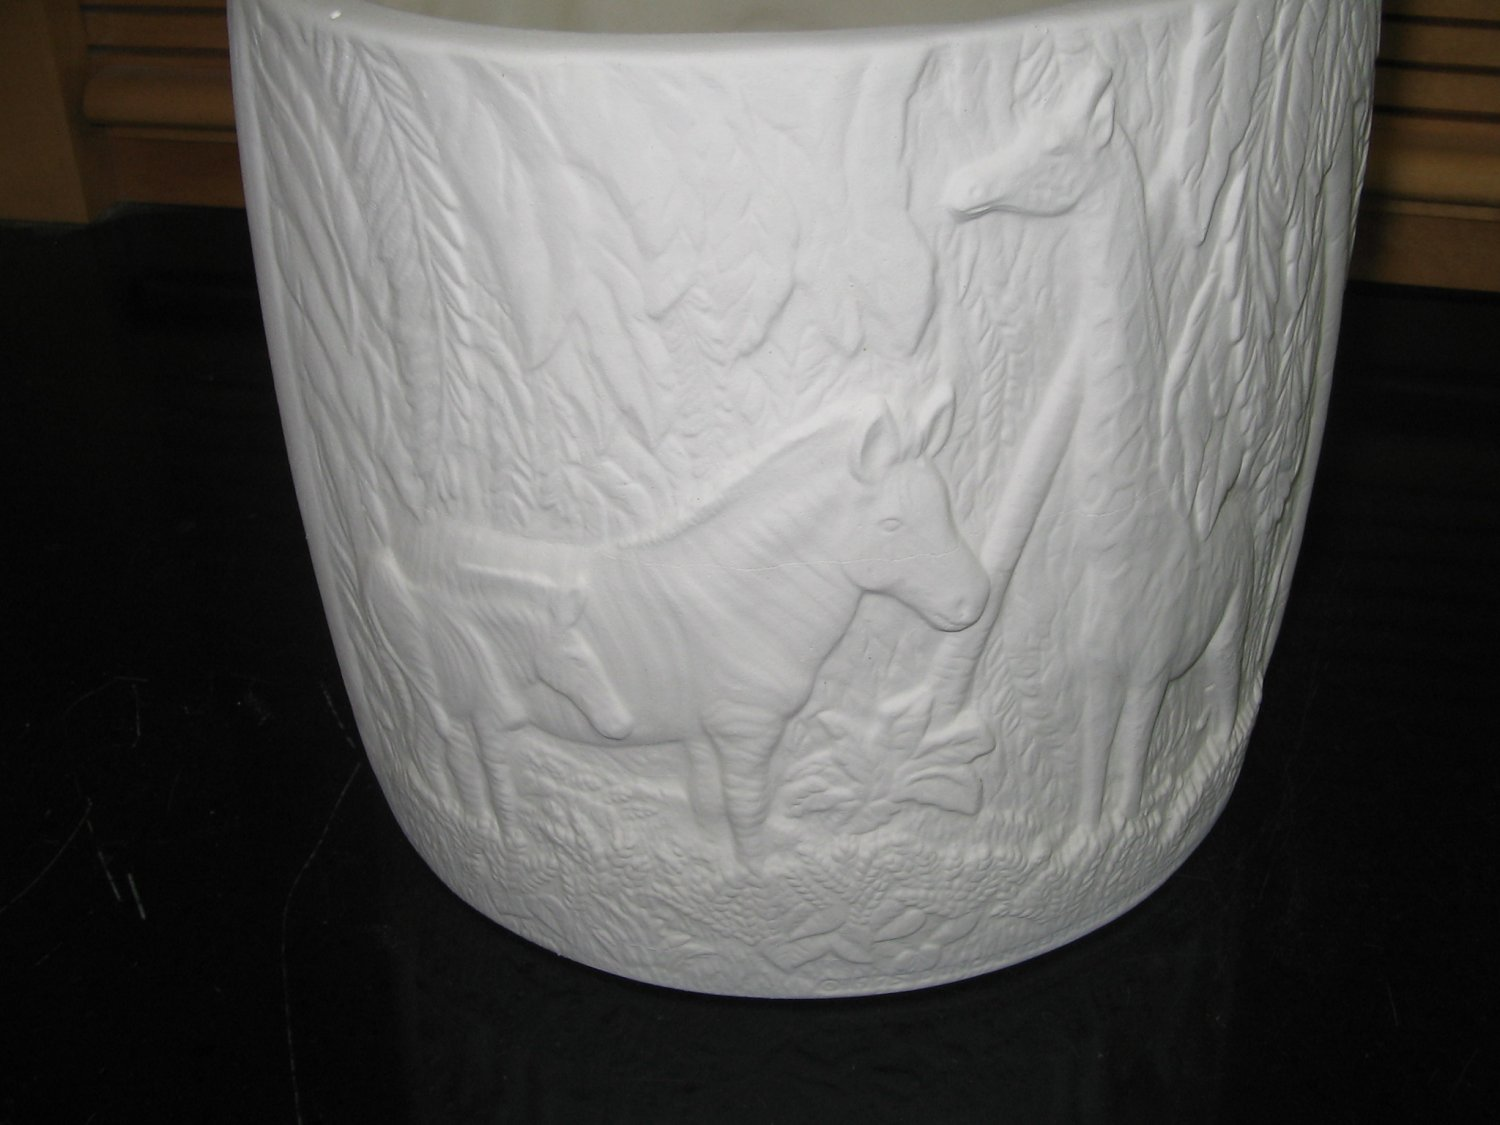 Ready To Paint Zebra Giraffe Flower Pot Planter U Paint Ceramic Bisque